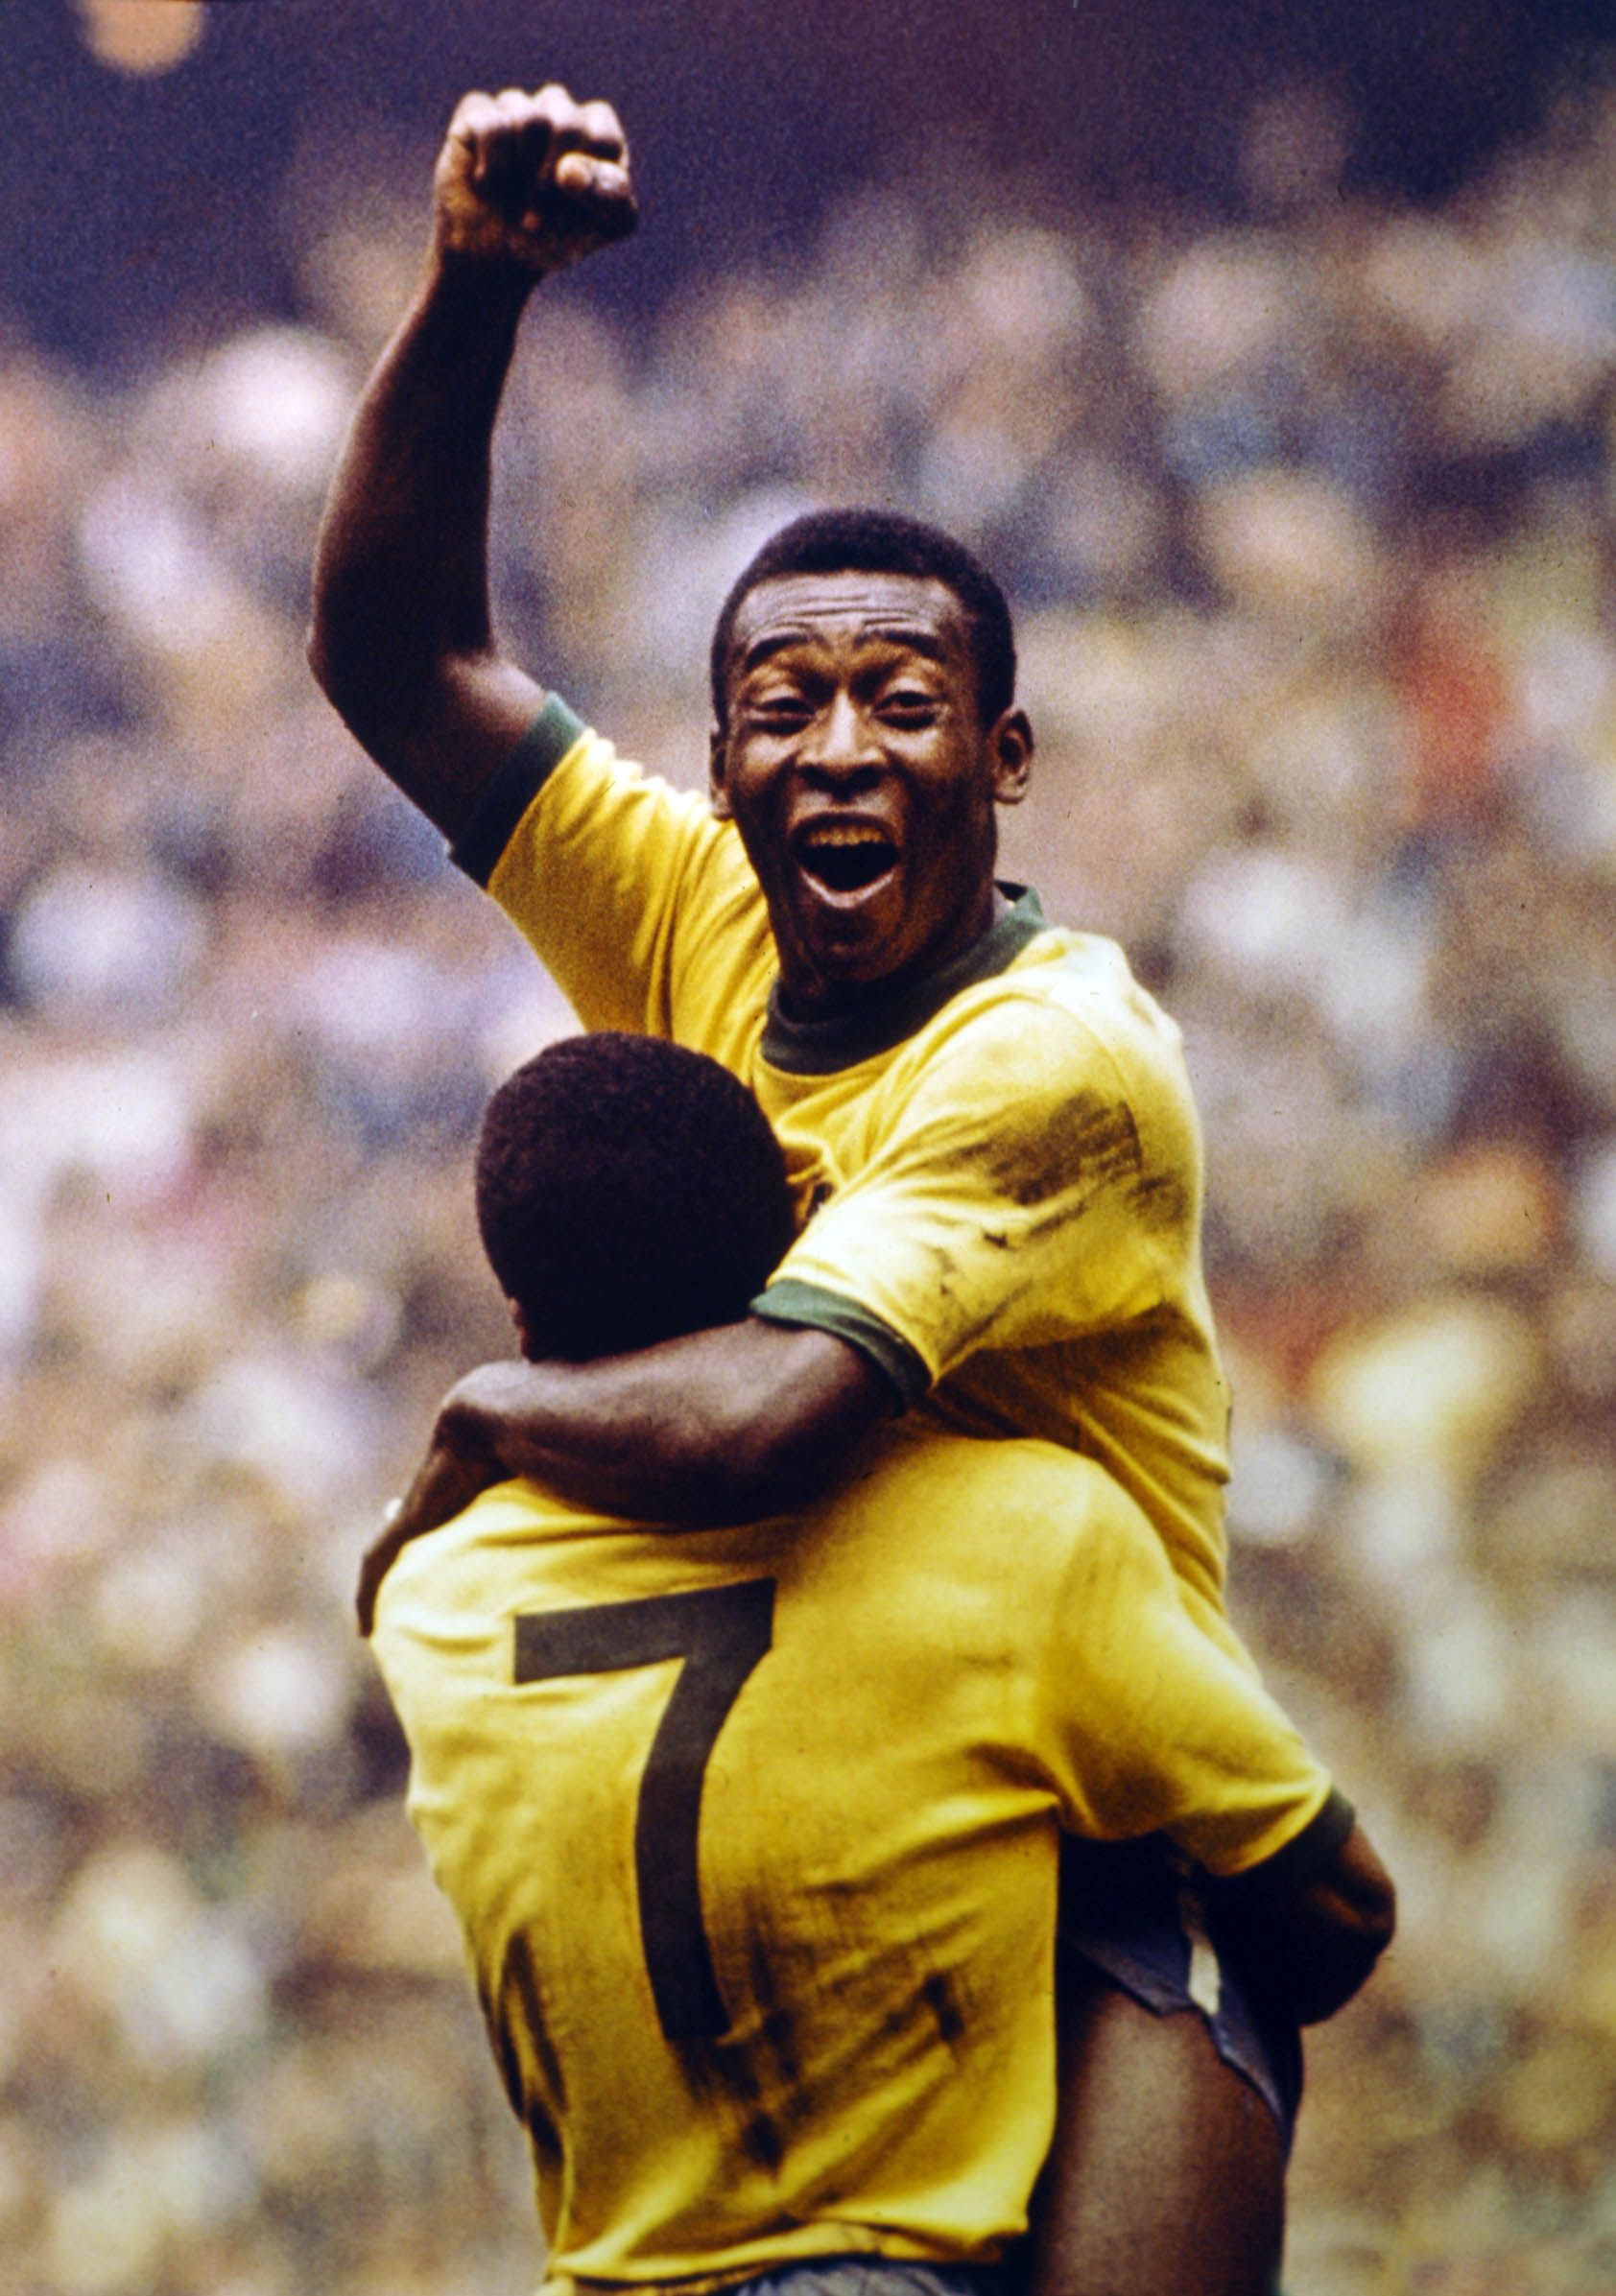 The amazing soccer player pele